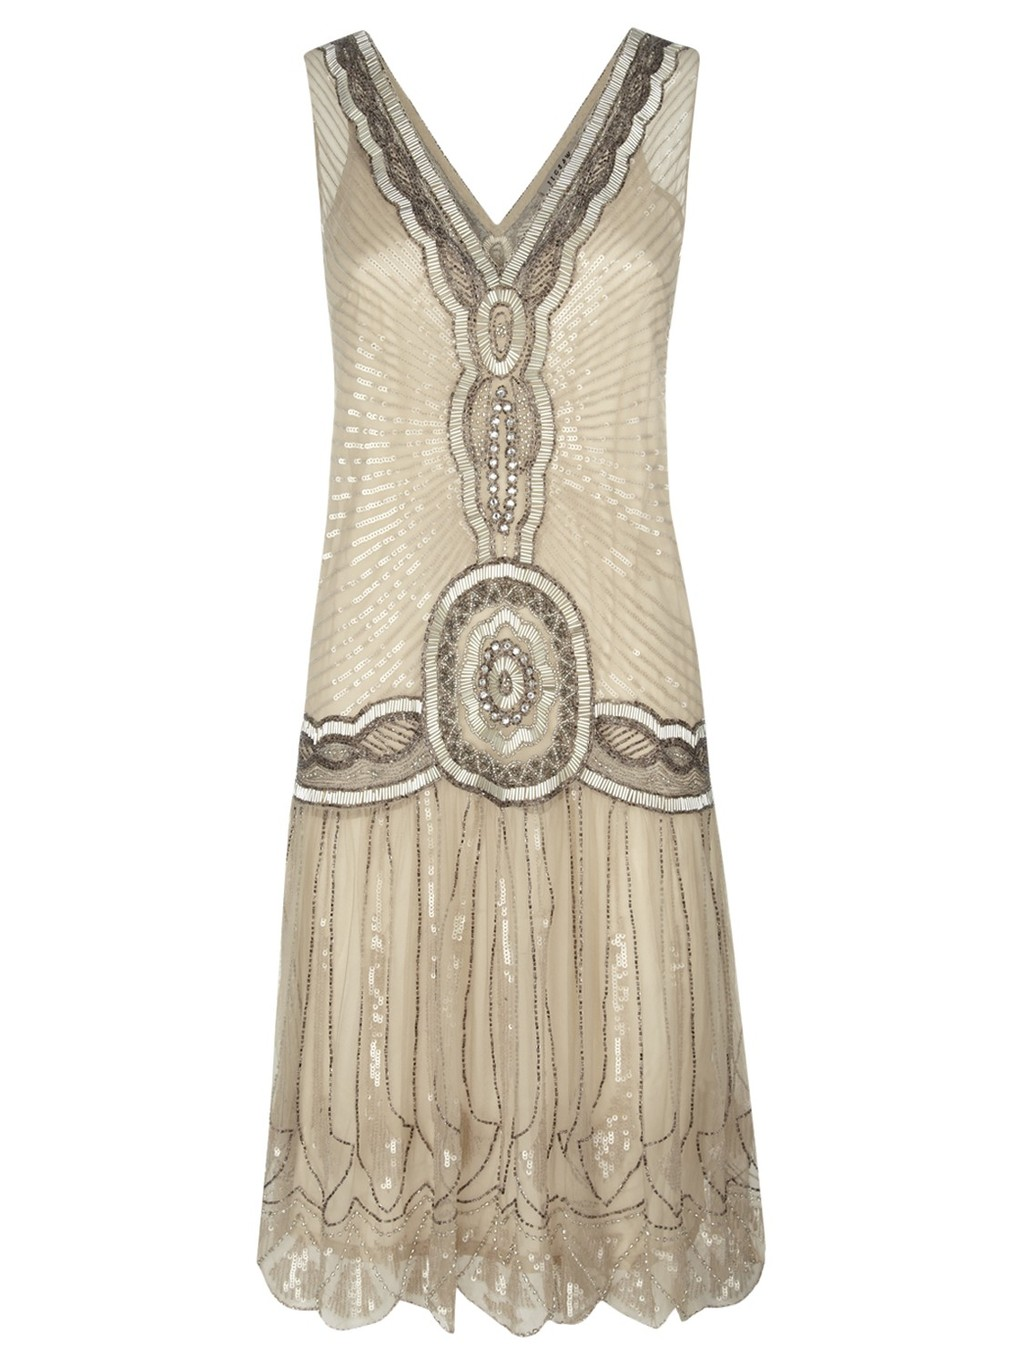 Jigsaw: Sequin Flapper Dress, Oyster (in ivory/cream)